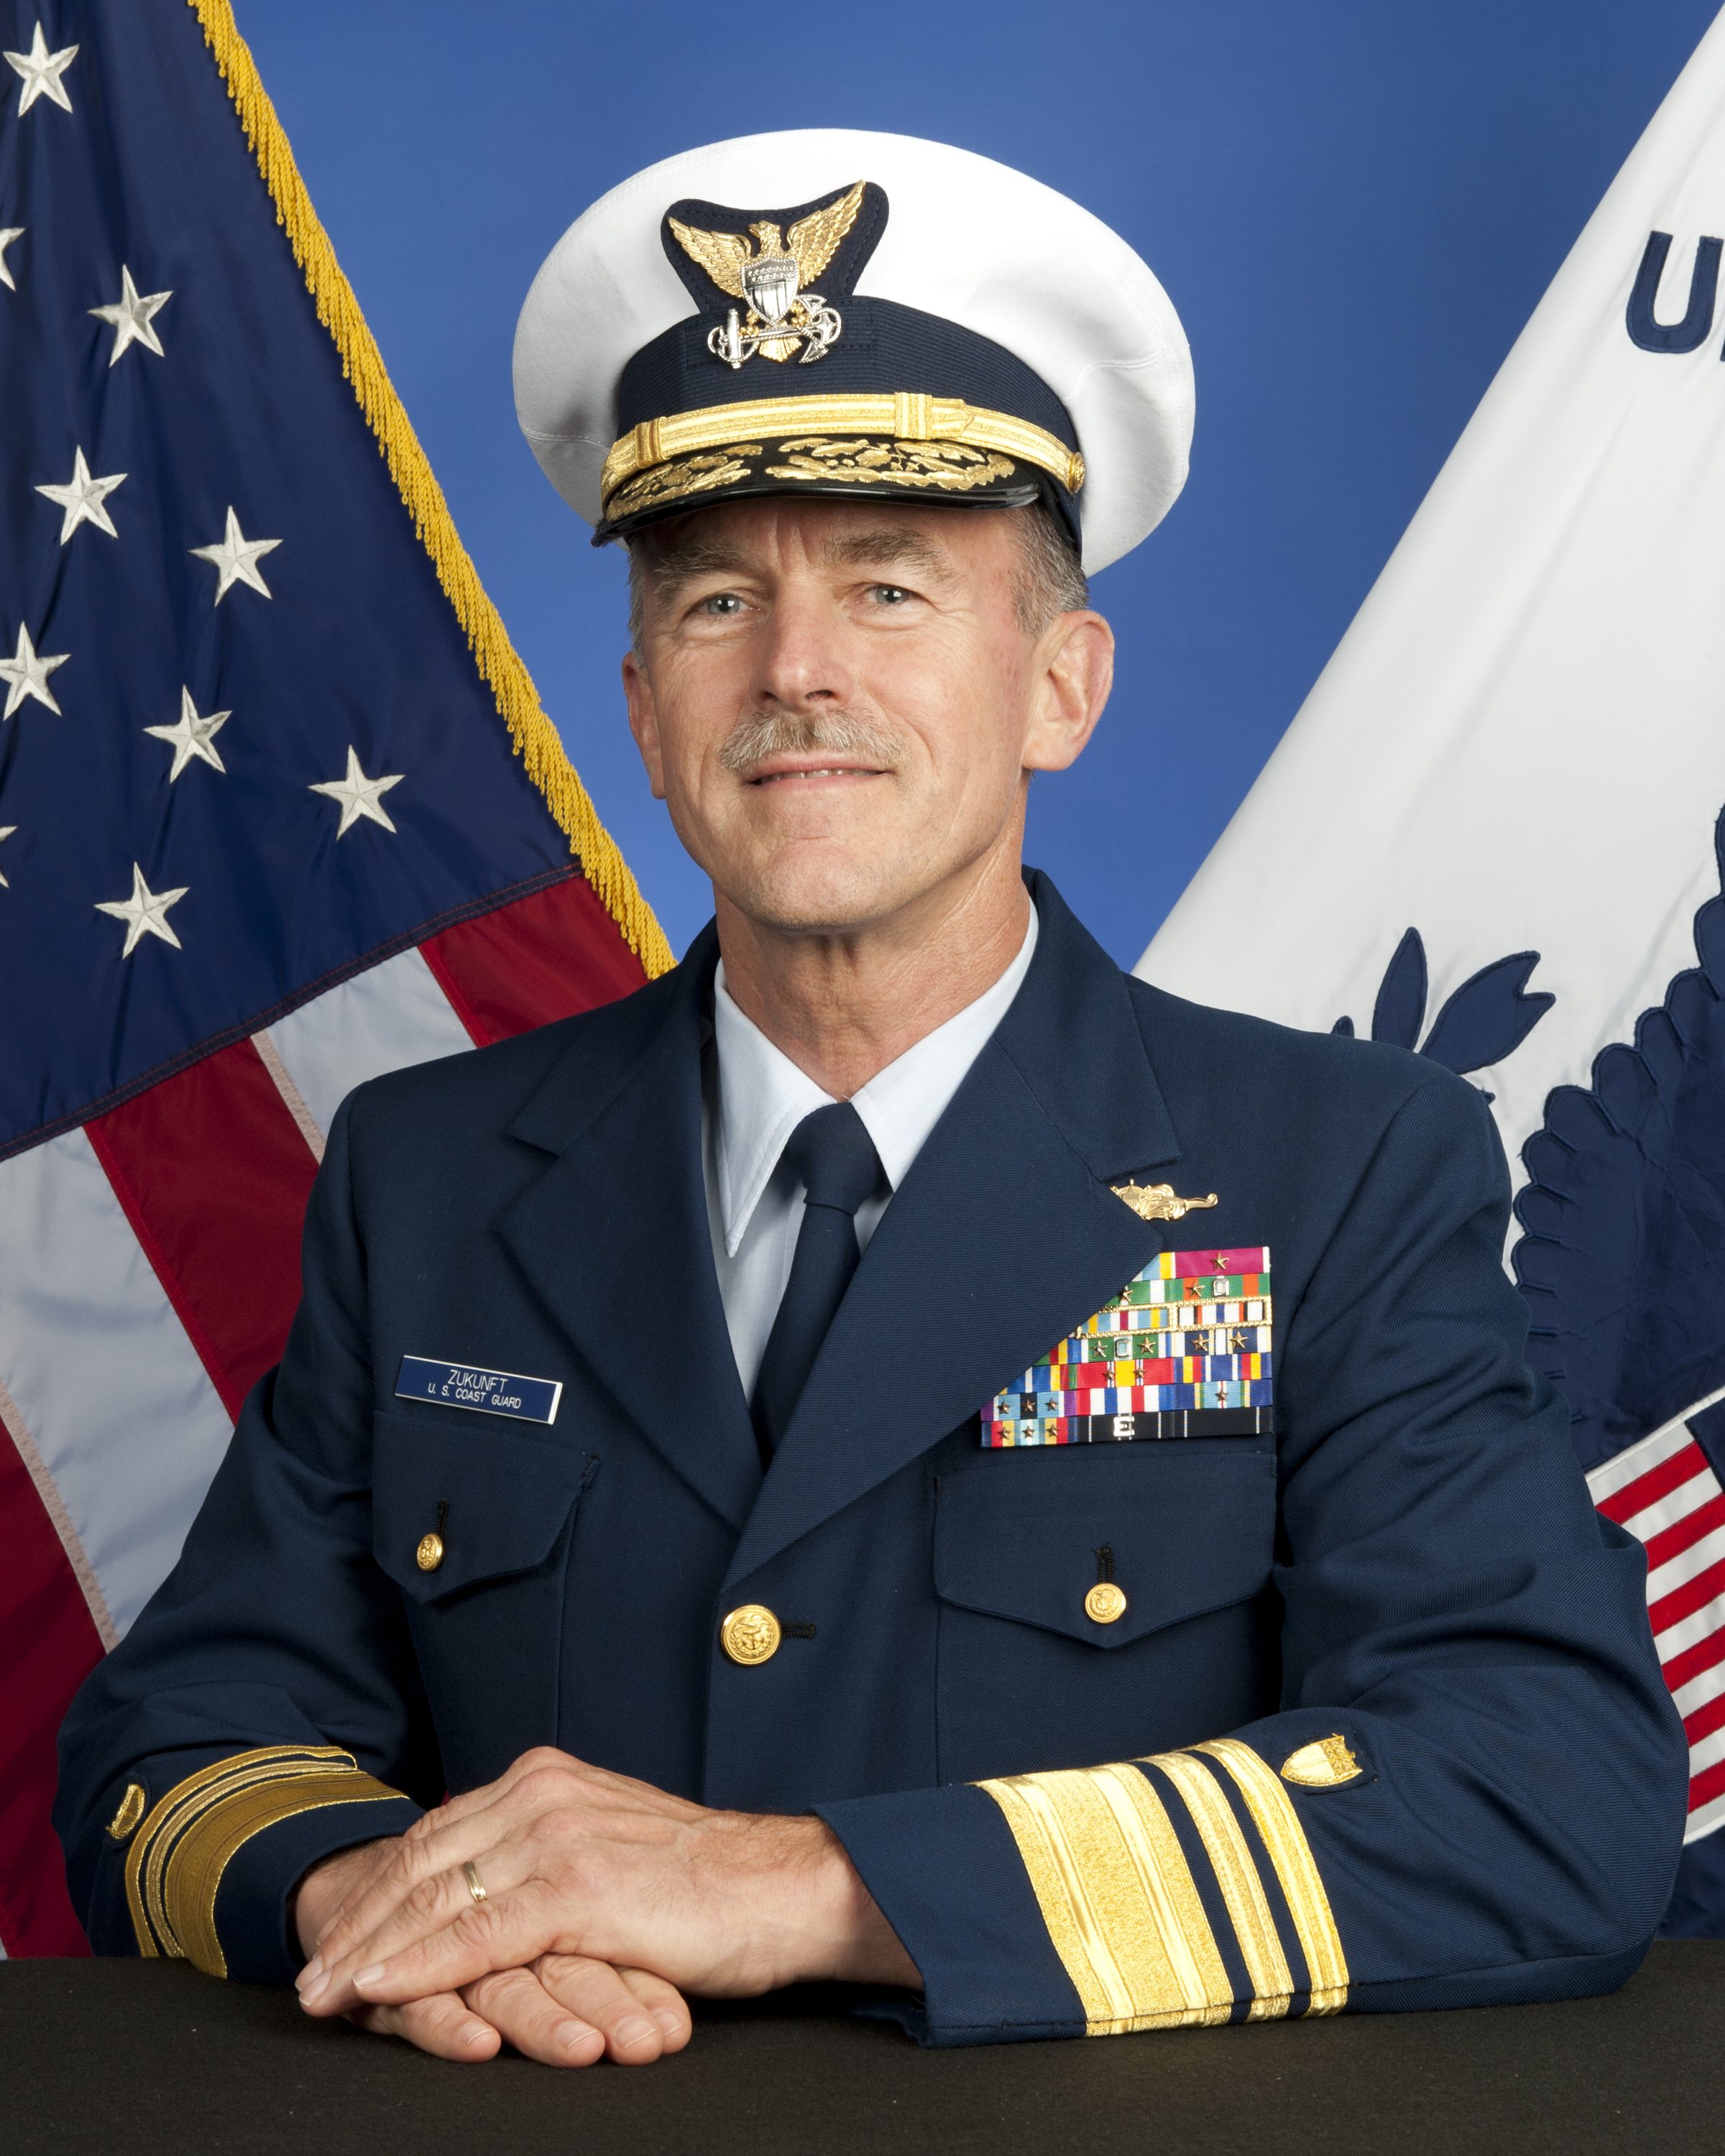 President Obama Picks Vice Adm. Zukunft as next Coast Guard Commandant